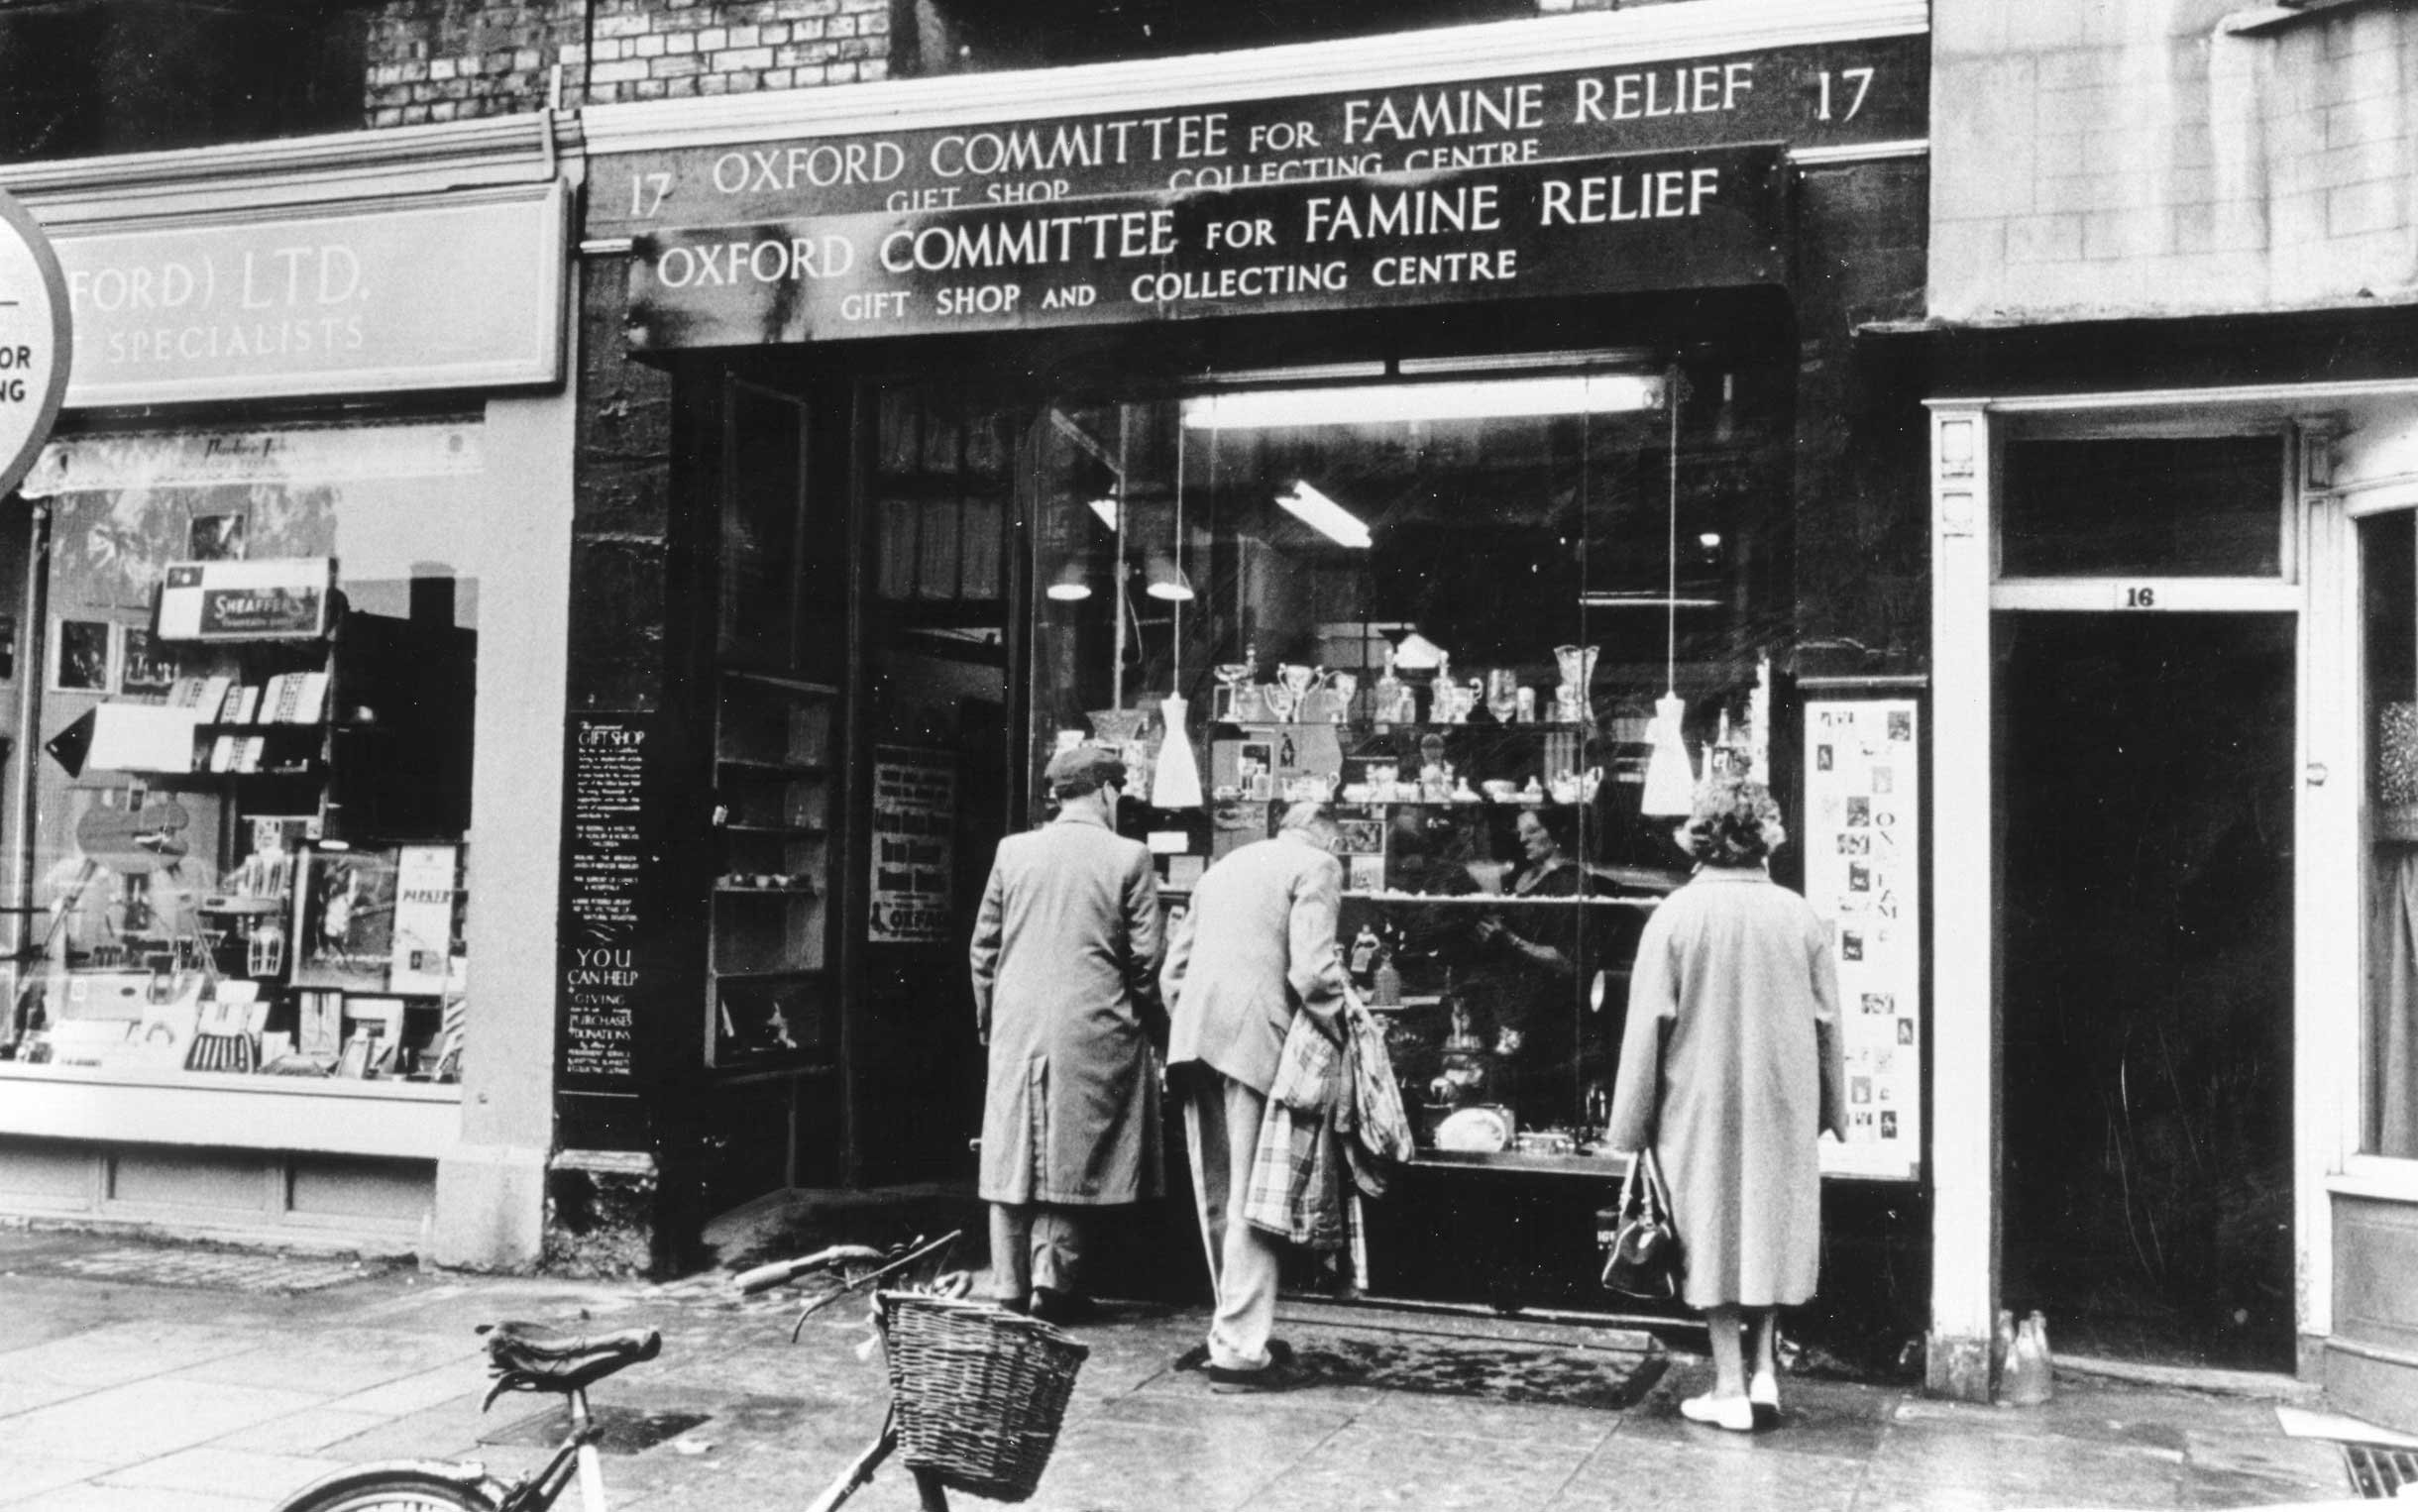 oxfam-shop-our-history-ogb-51393.jpg